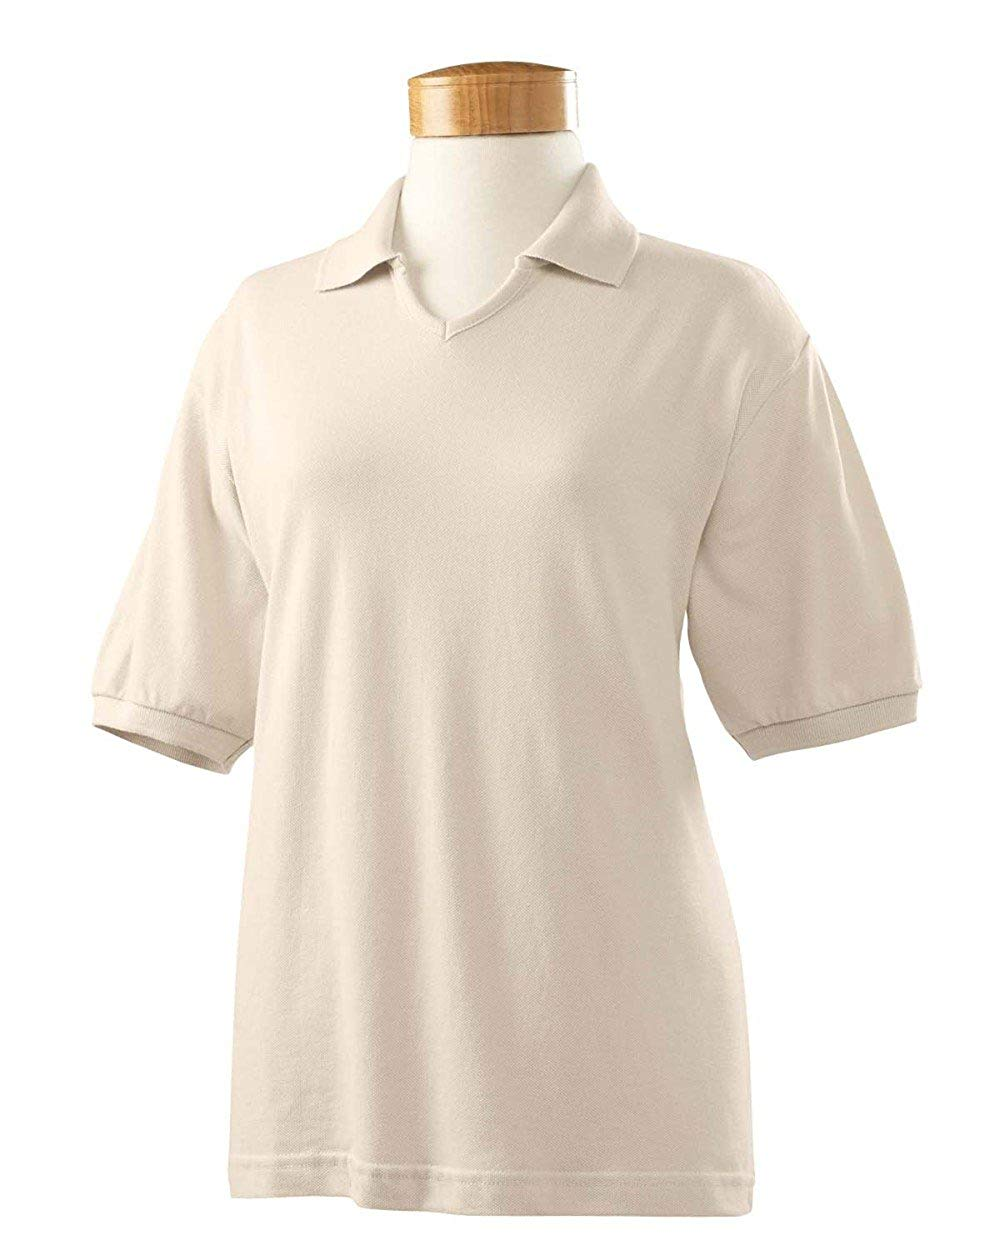 Cheap Polo V Neck Women Find Polo V Neck Women Deals On Line At